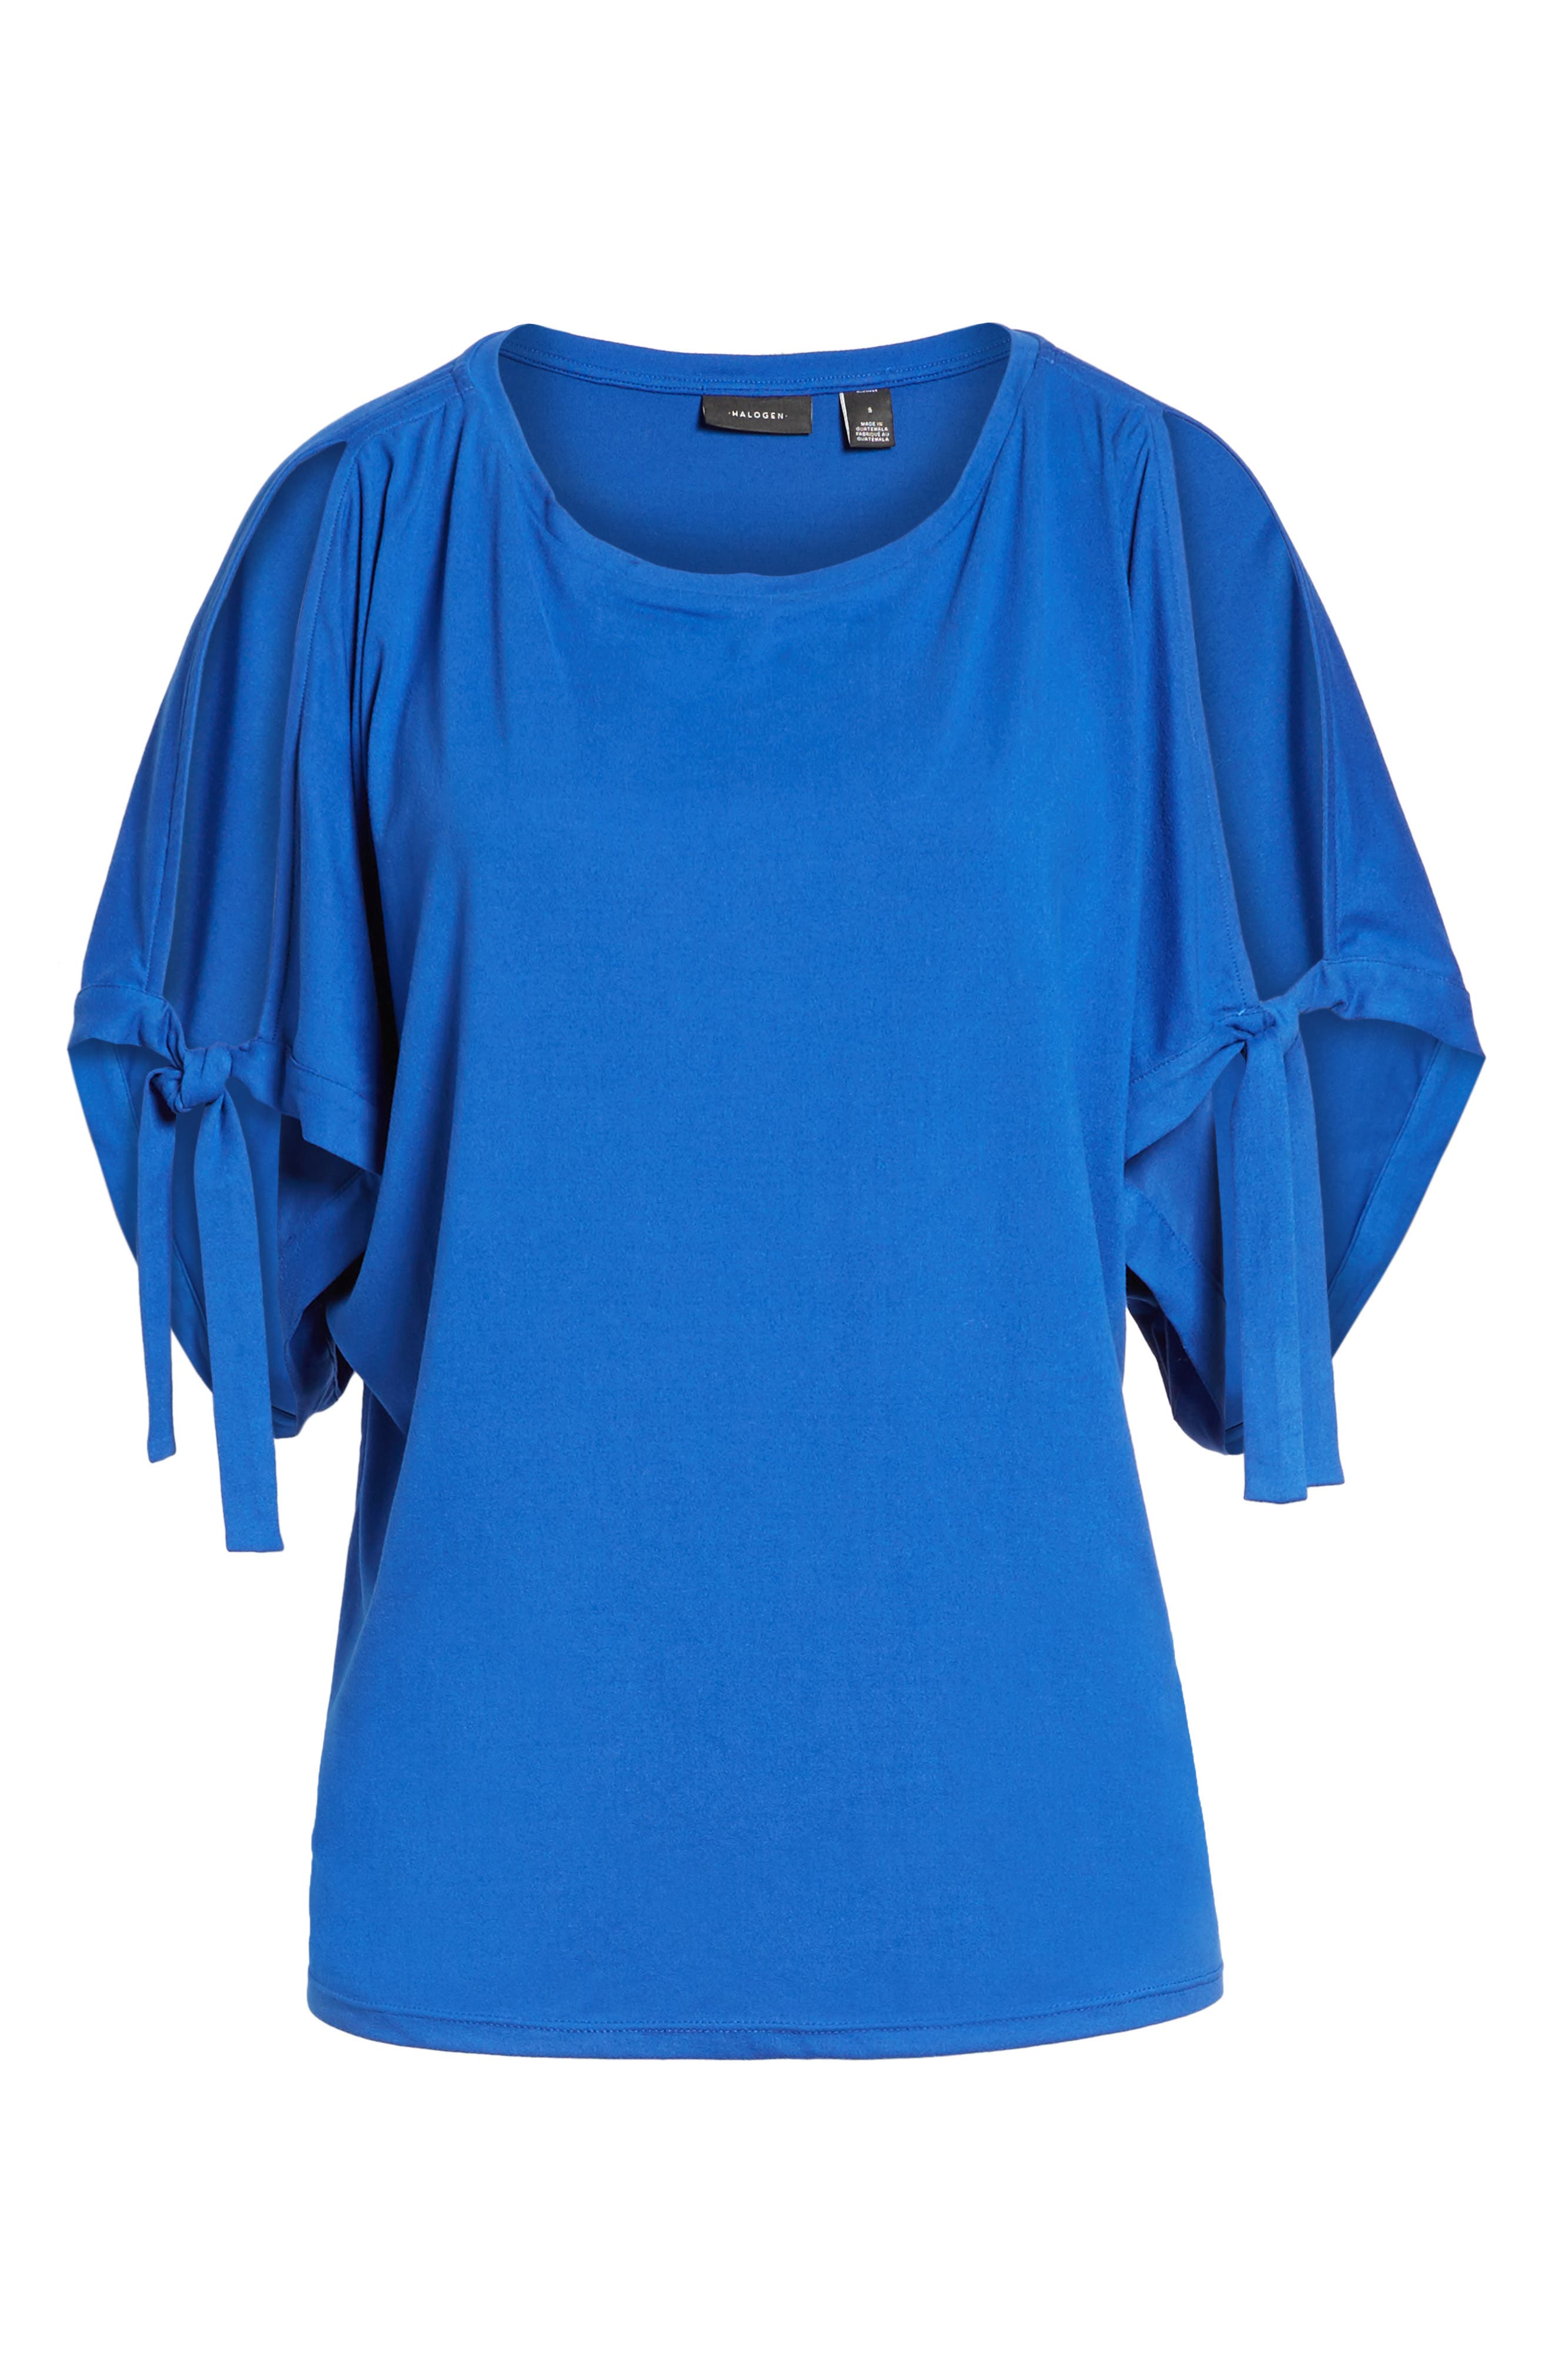 Stretch Knit Top,                             Alternate thumbnail 6, color,                             421